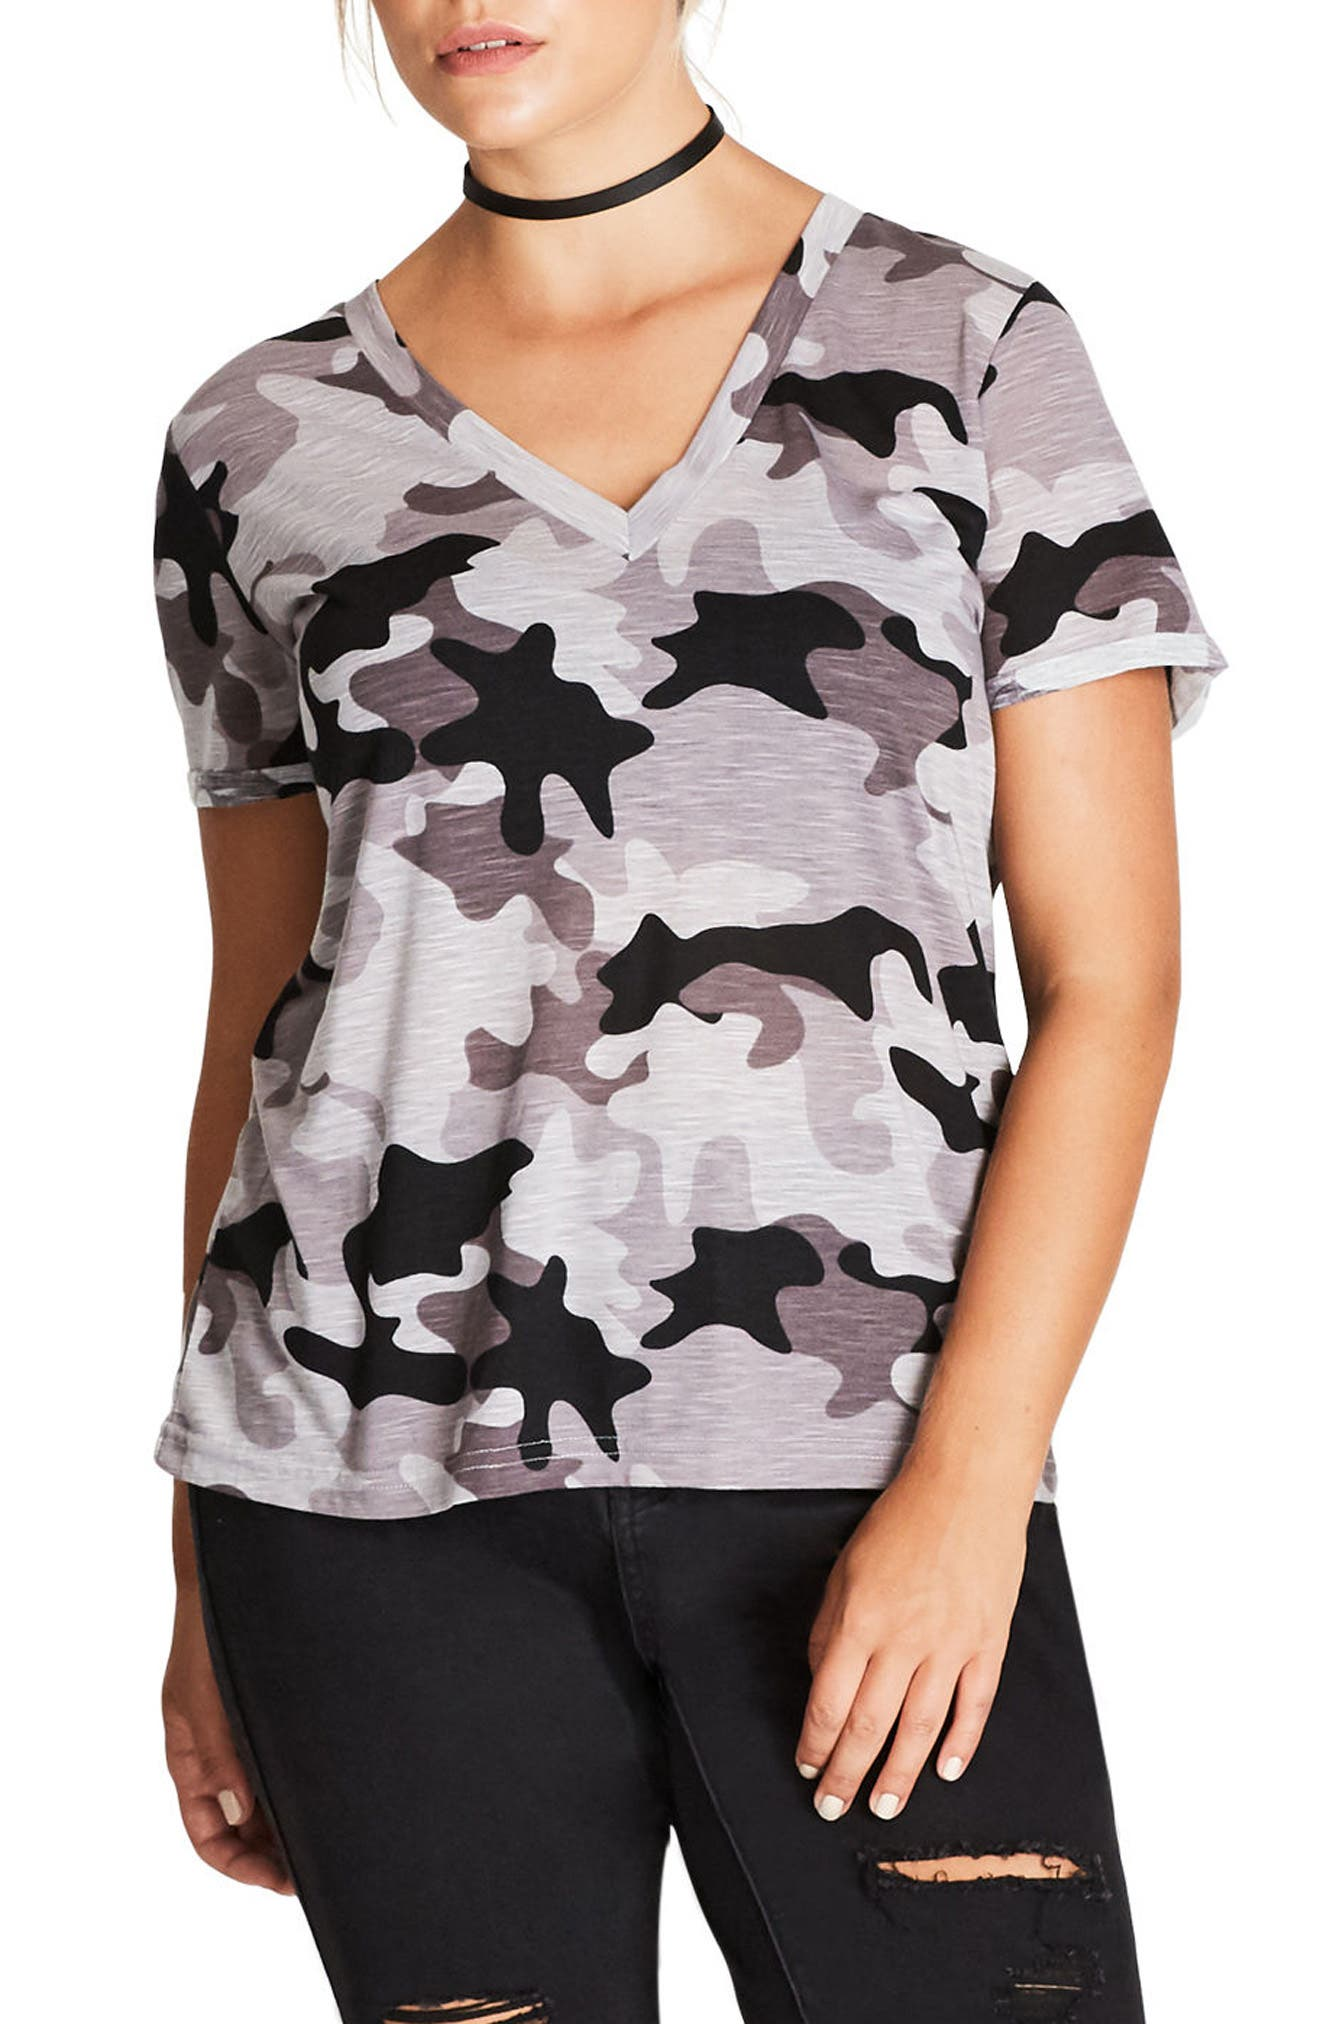 Alternate Image 1 Selected - City Chic Camouflage Print Top (Plus Size)